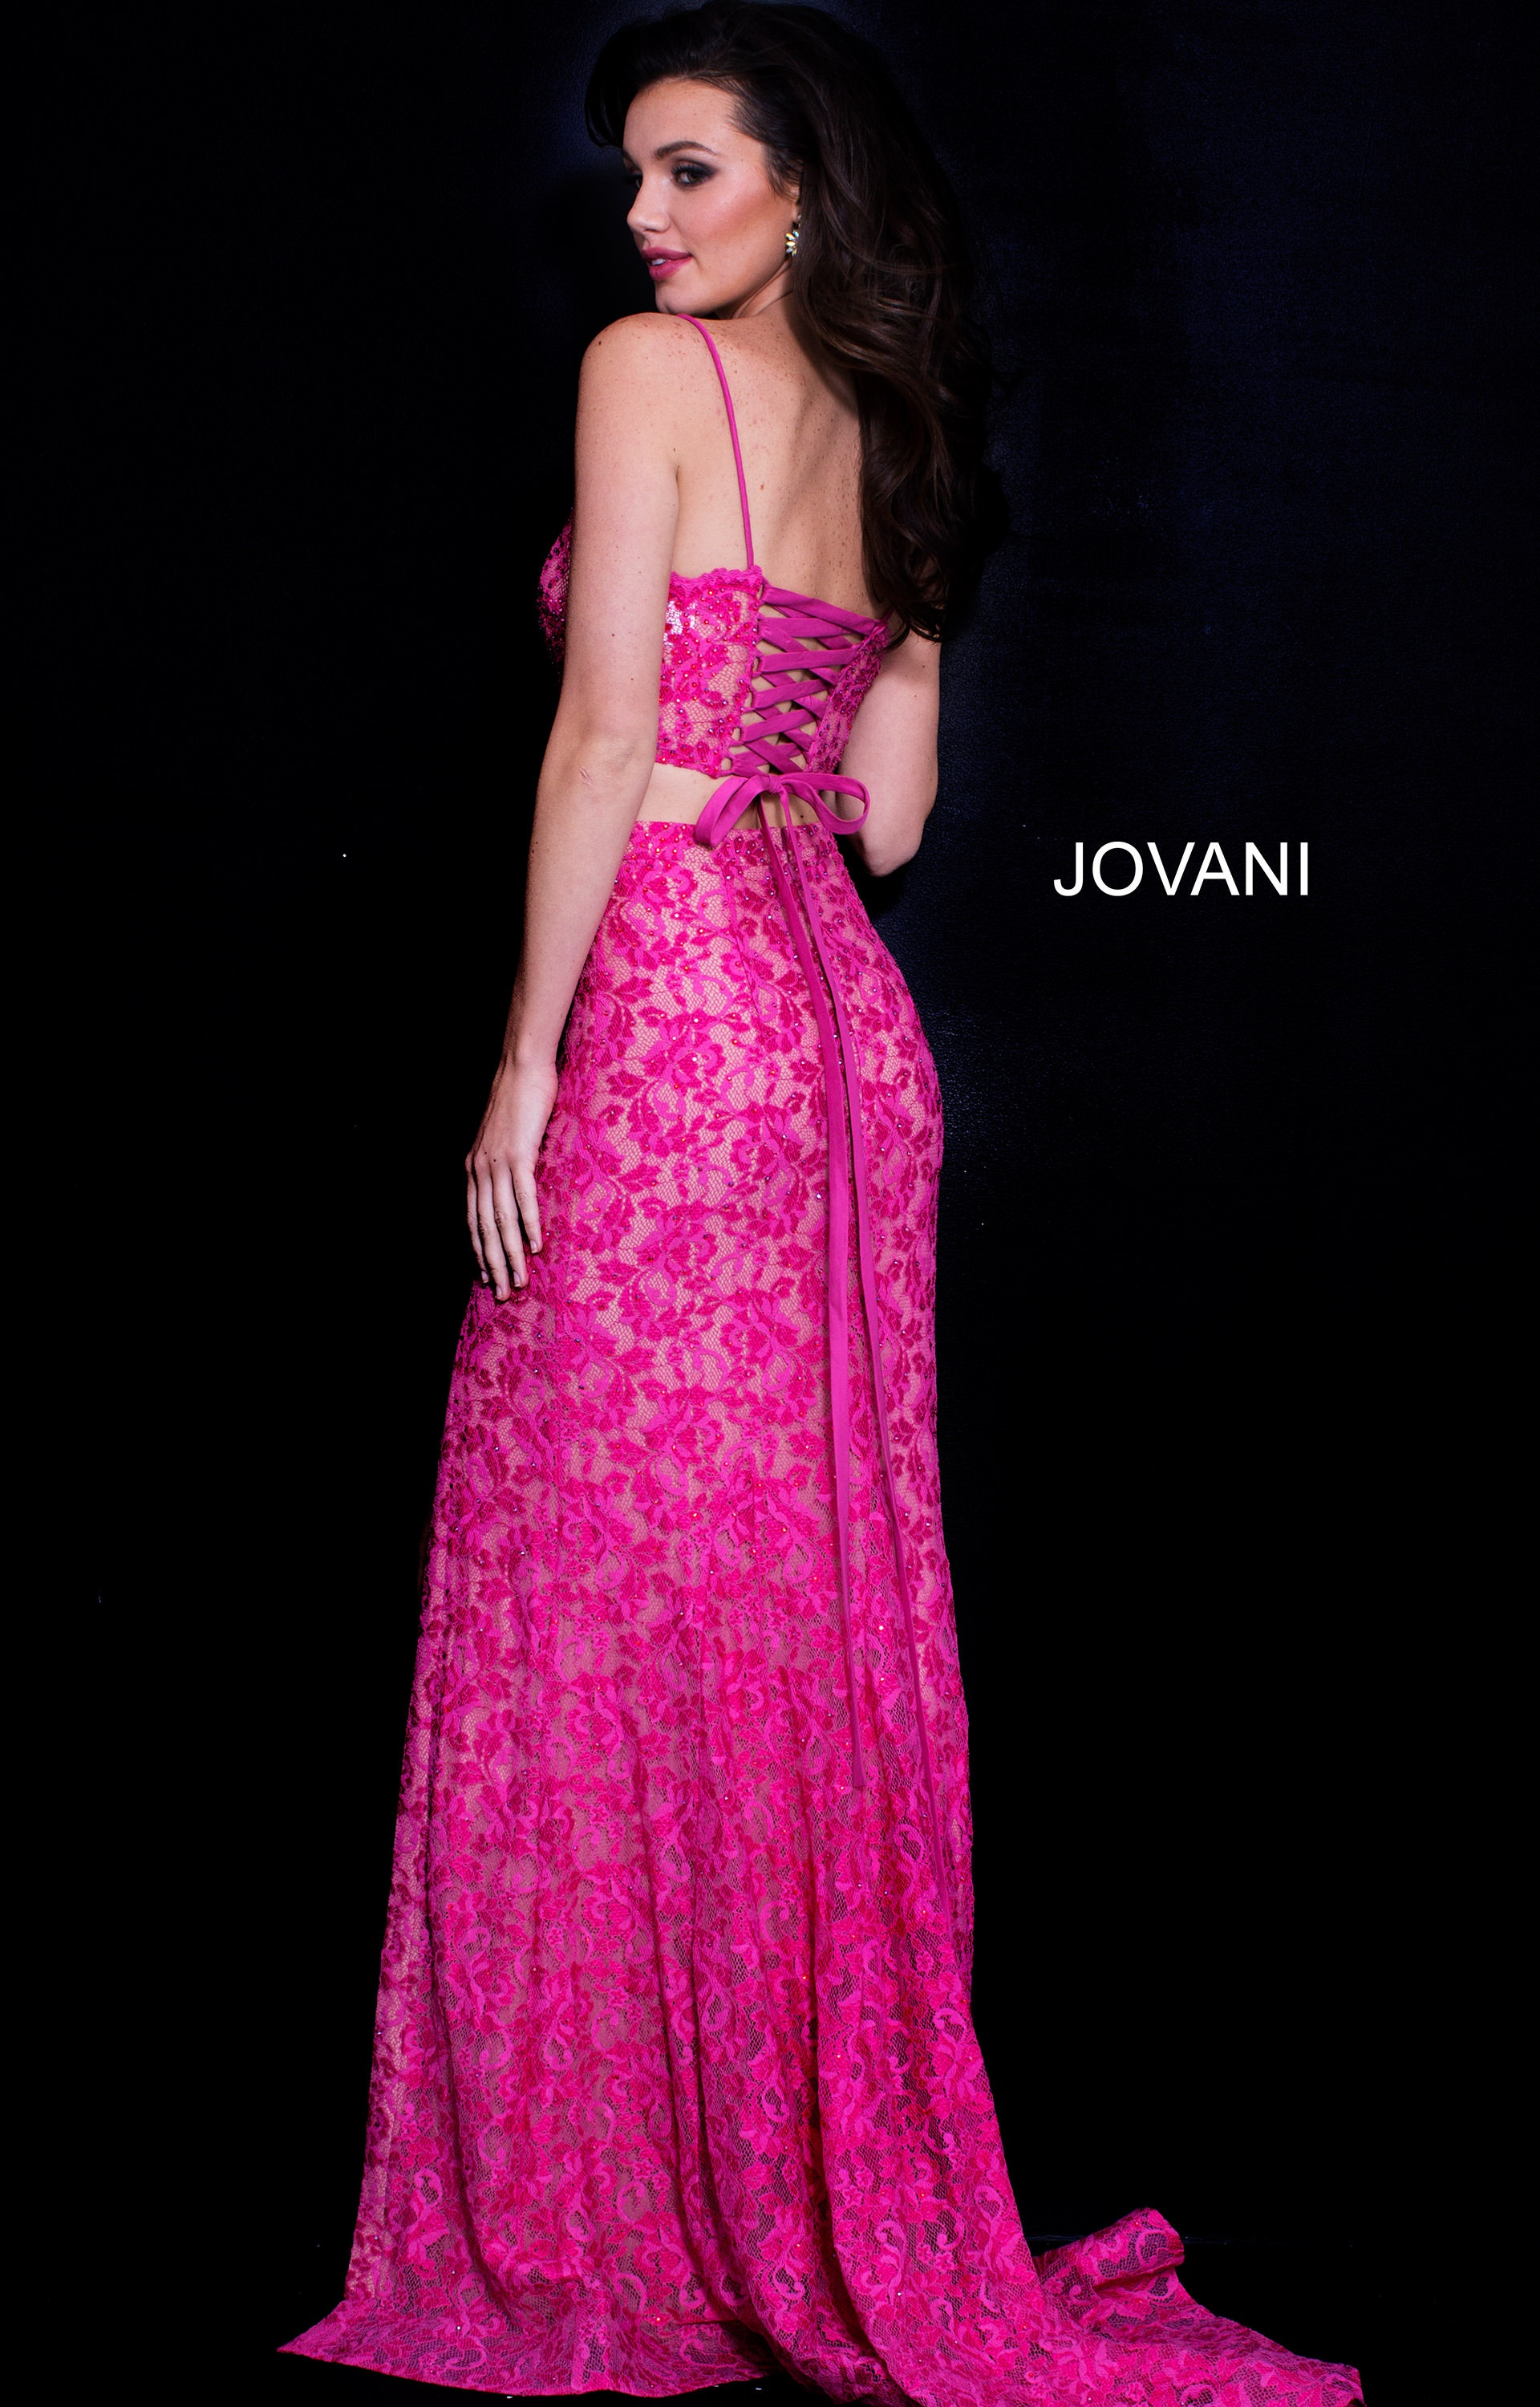 Jovani 60373 - Long Fitted Lace Open Back Evening Dress Prom Dress